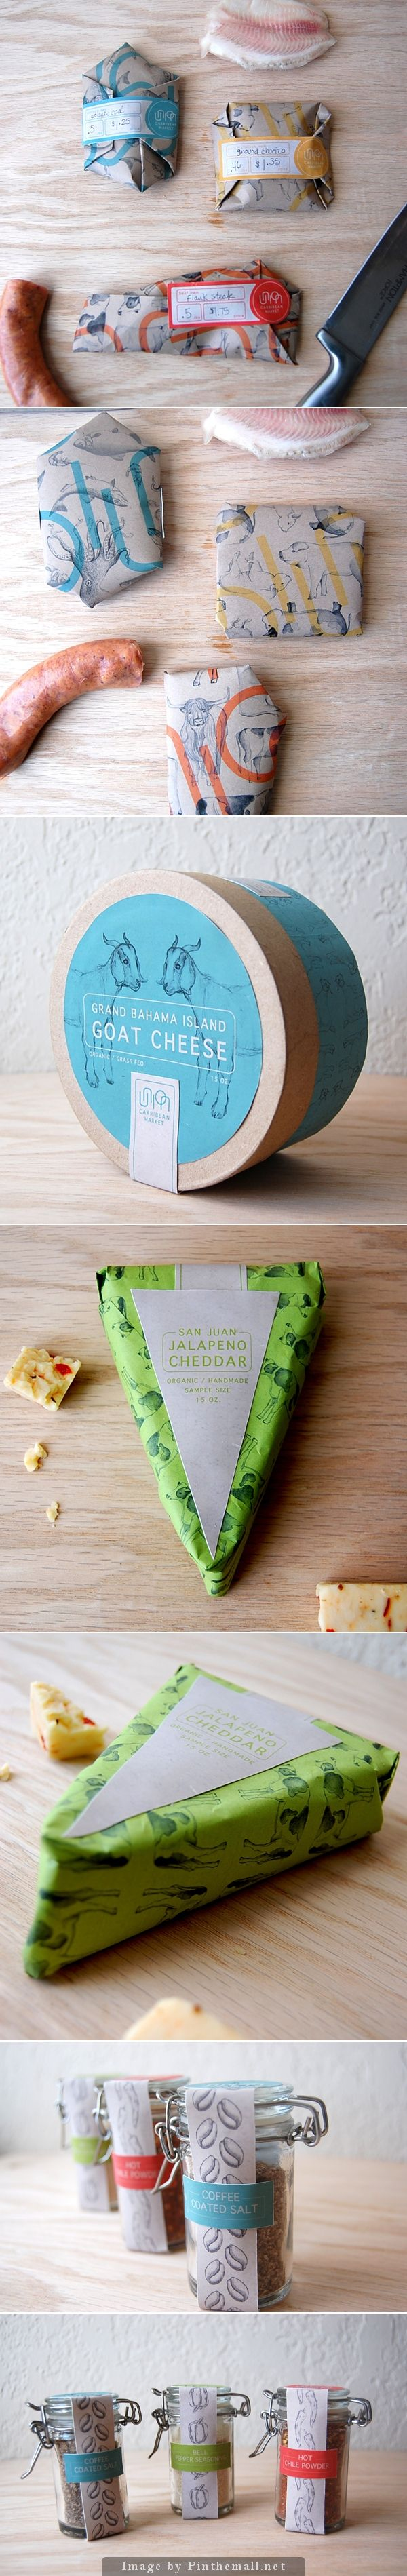 Union Market Deli - Brand identity applied to packaging design